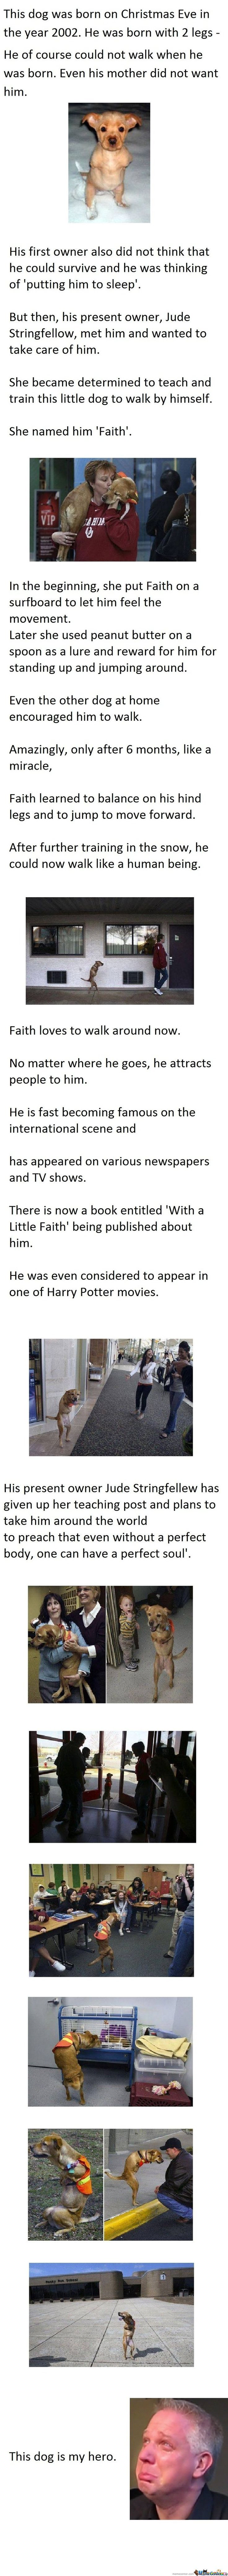 Faith The Dog - i love this story!